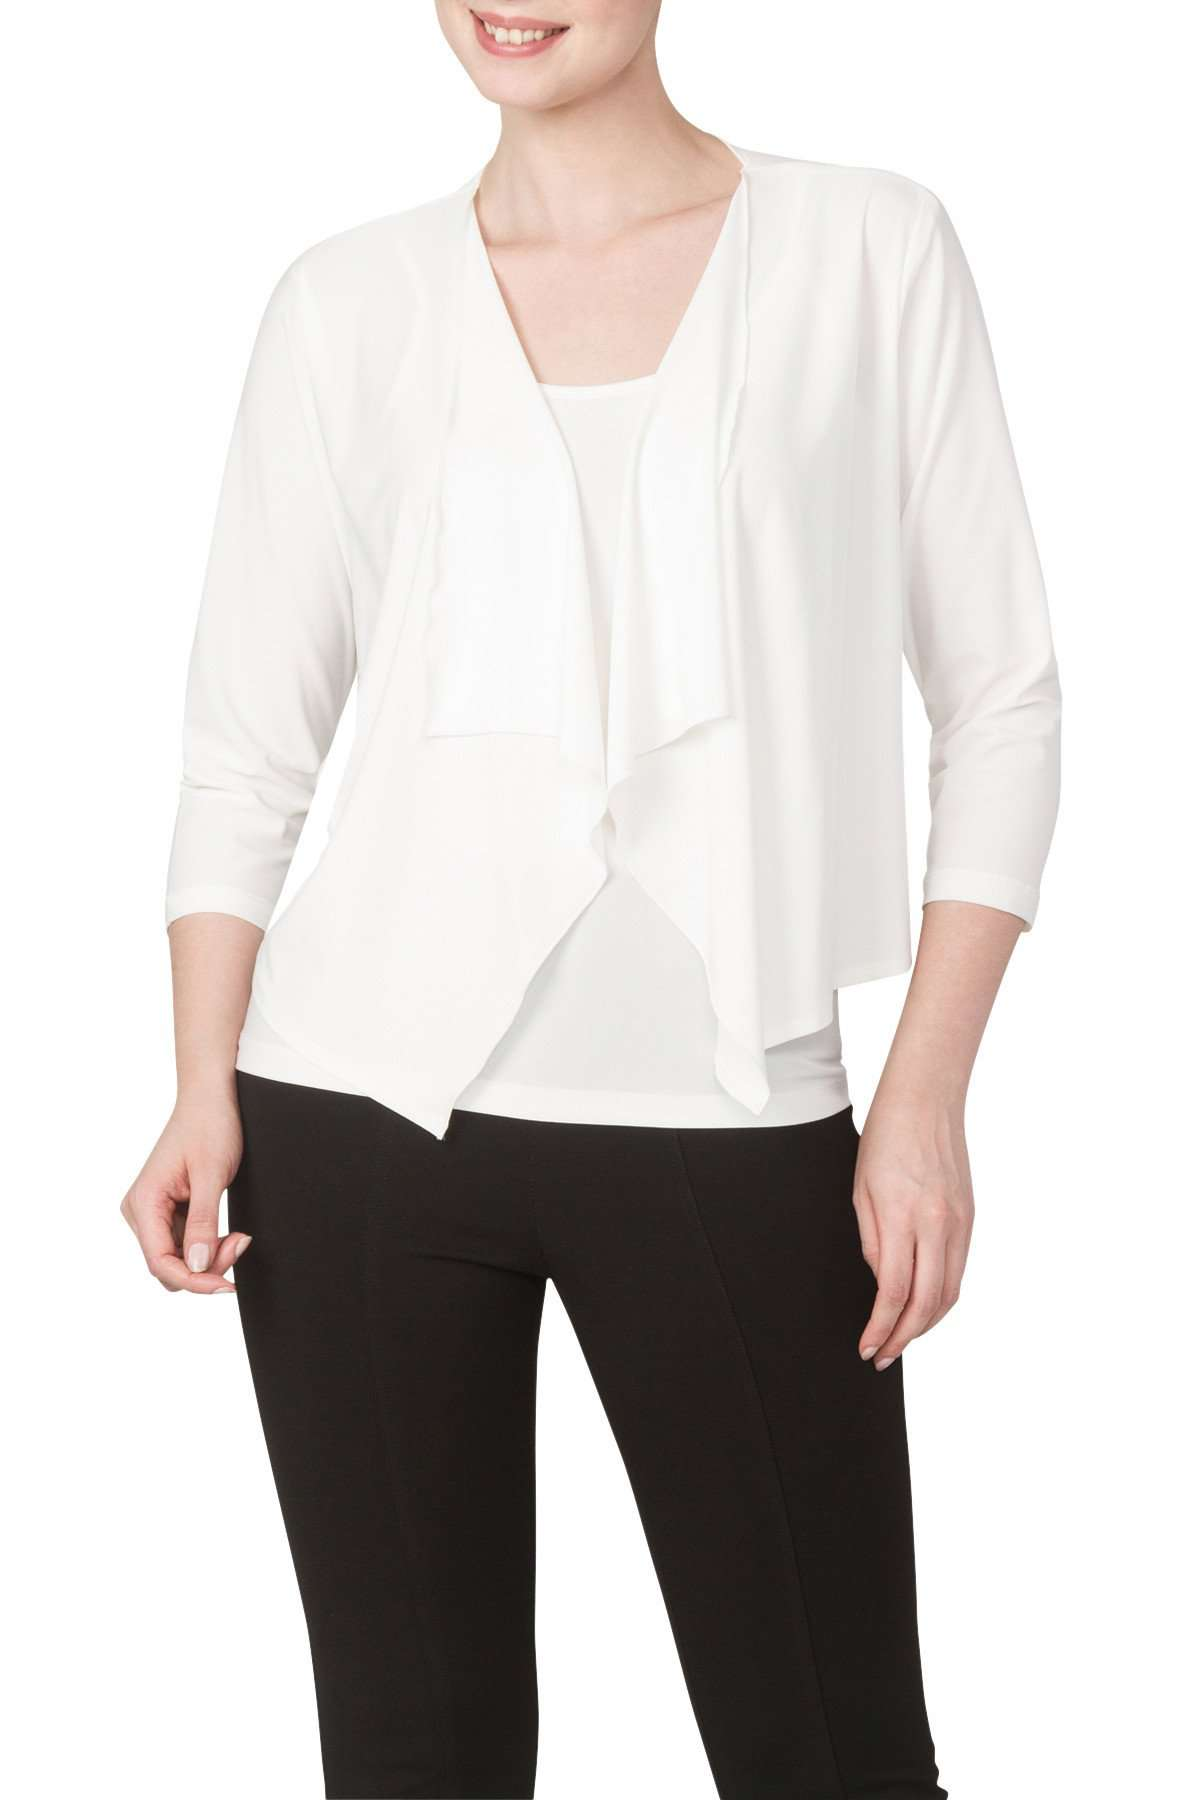 Women's Ivory Bolero Jacket Now 50 Off-Made in Canada-Shop Local - Yvonne Marie - Yvonne Marie